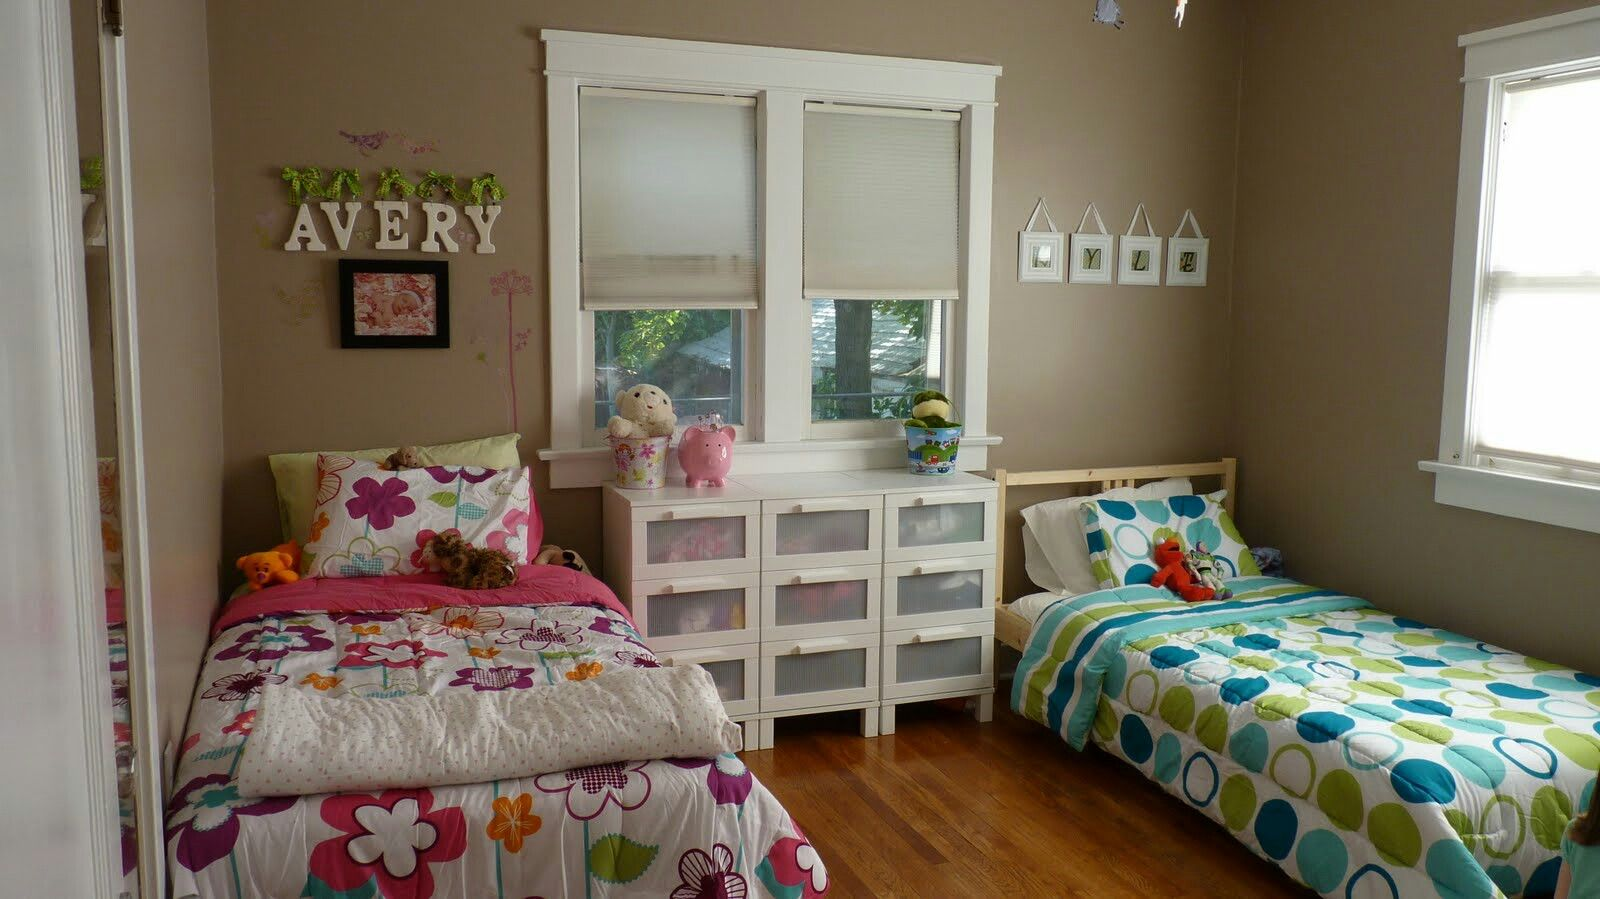 Childs Bedroom Pinkmila Silveira On Ideas Para Dormitorios  Pinterest